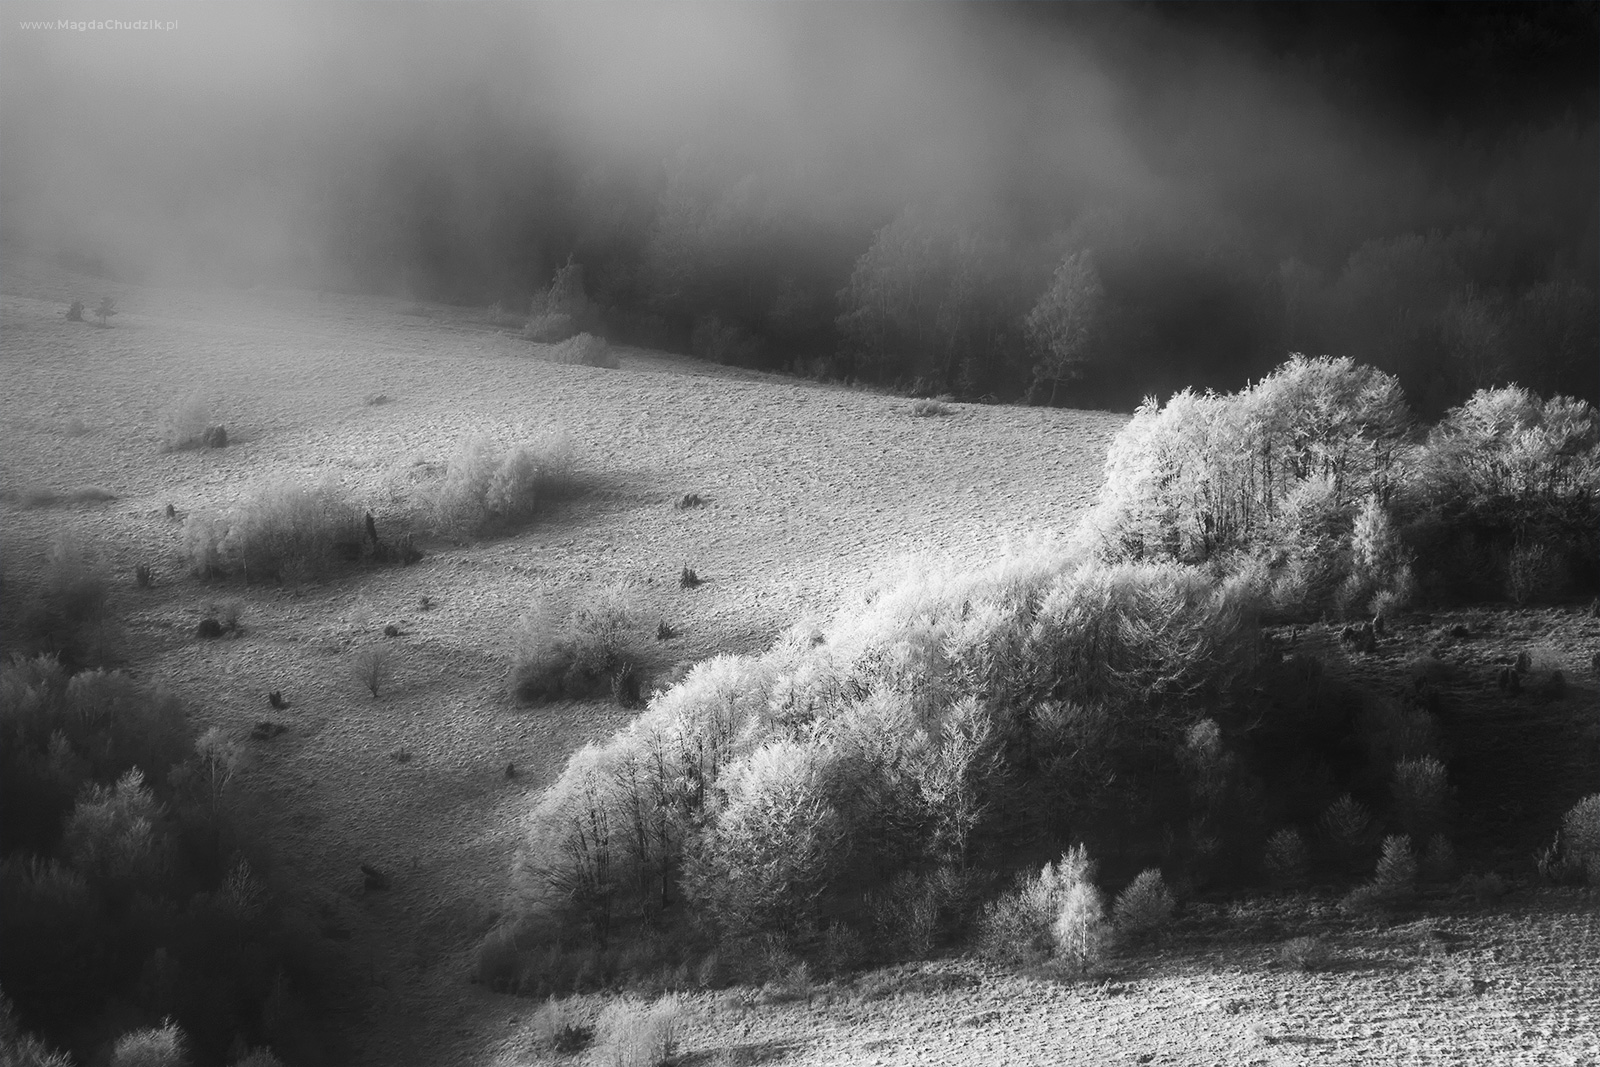 magda-chudzik-black-and-white-landscape-photography-27